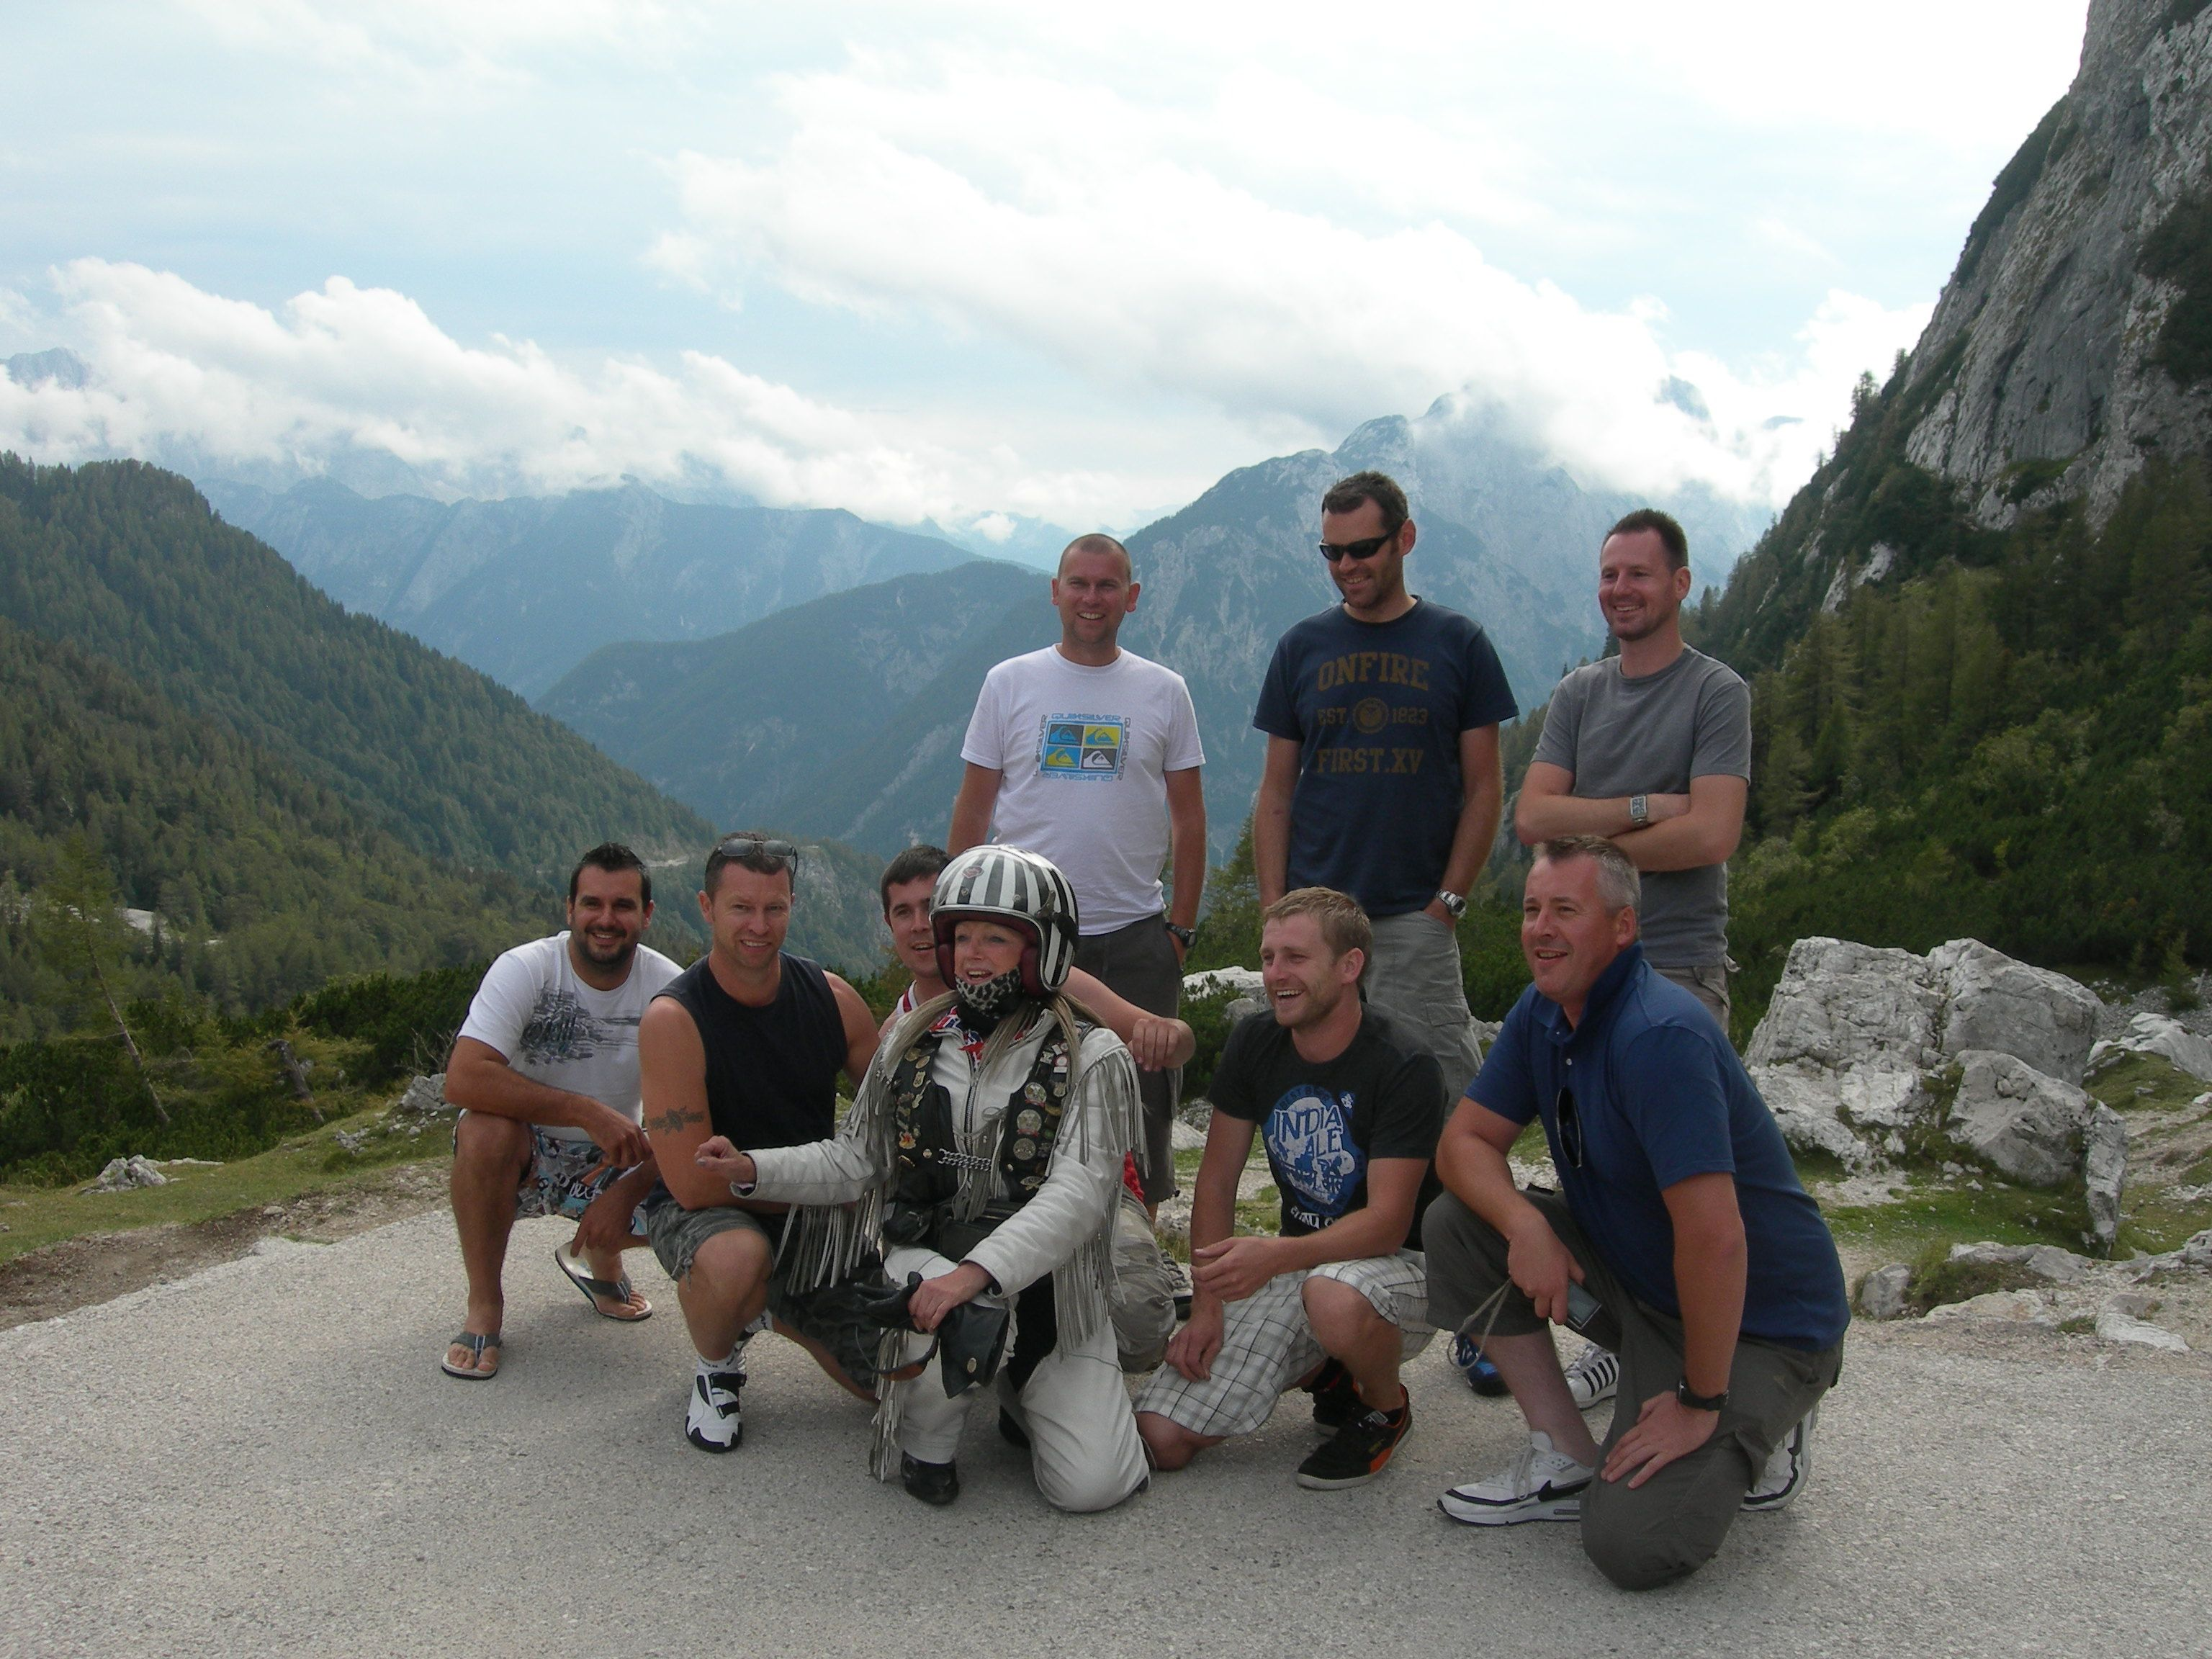 Motoscape banger rally participants at the top of the Vršič Pass